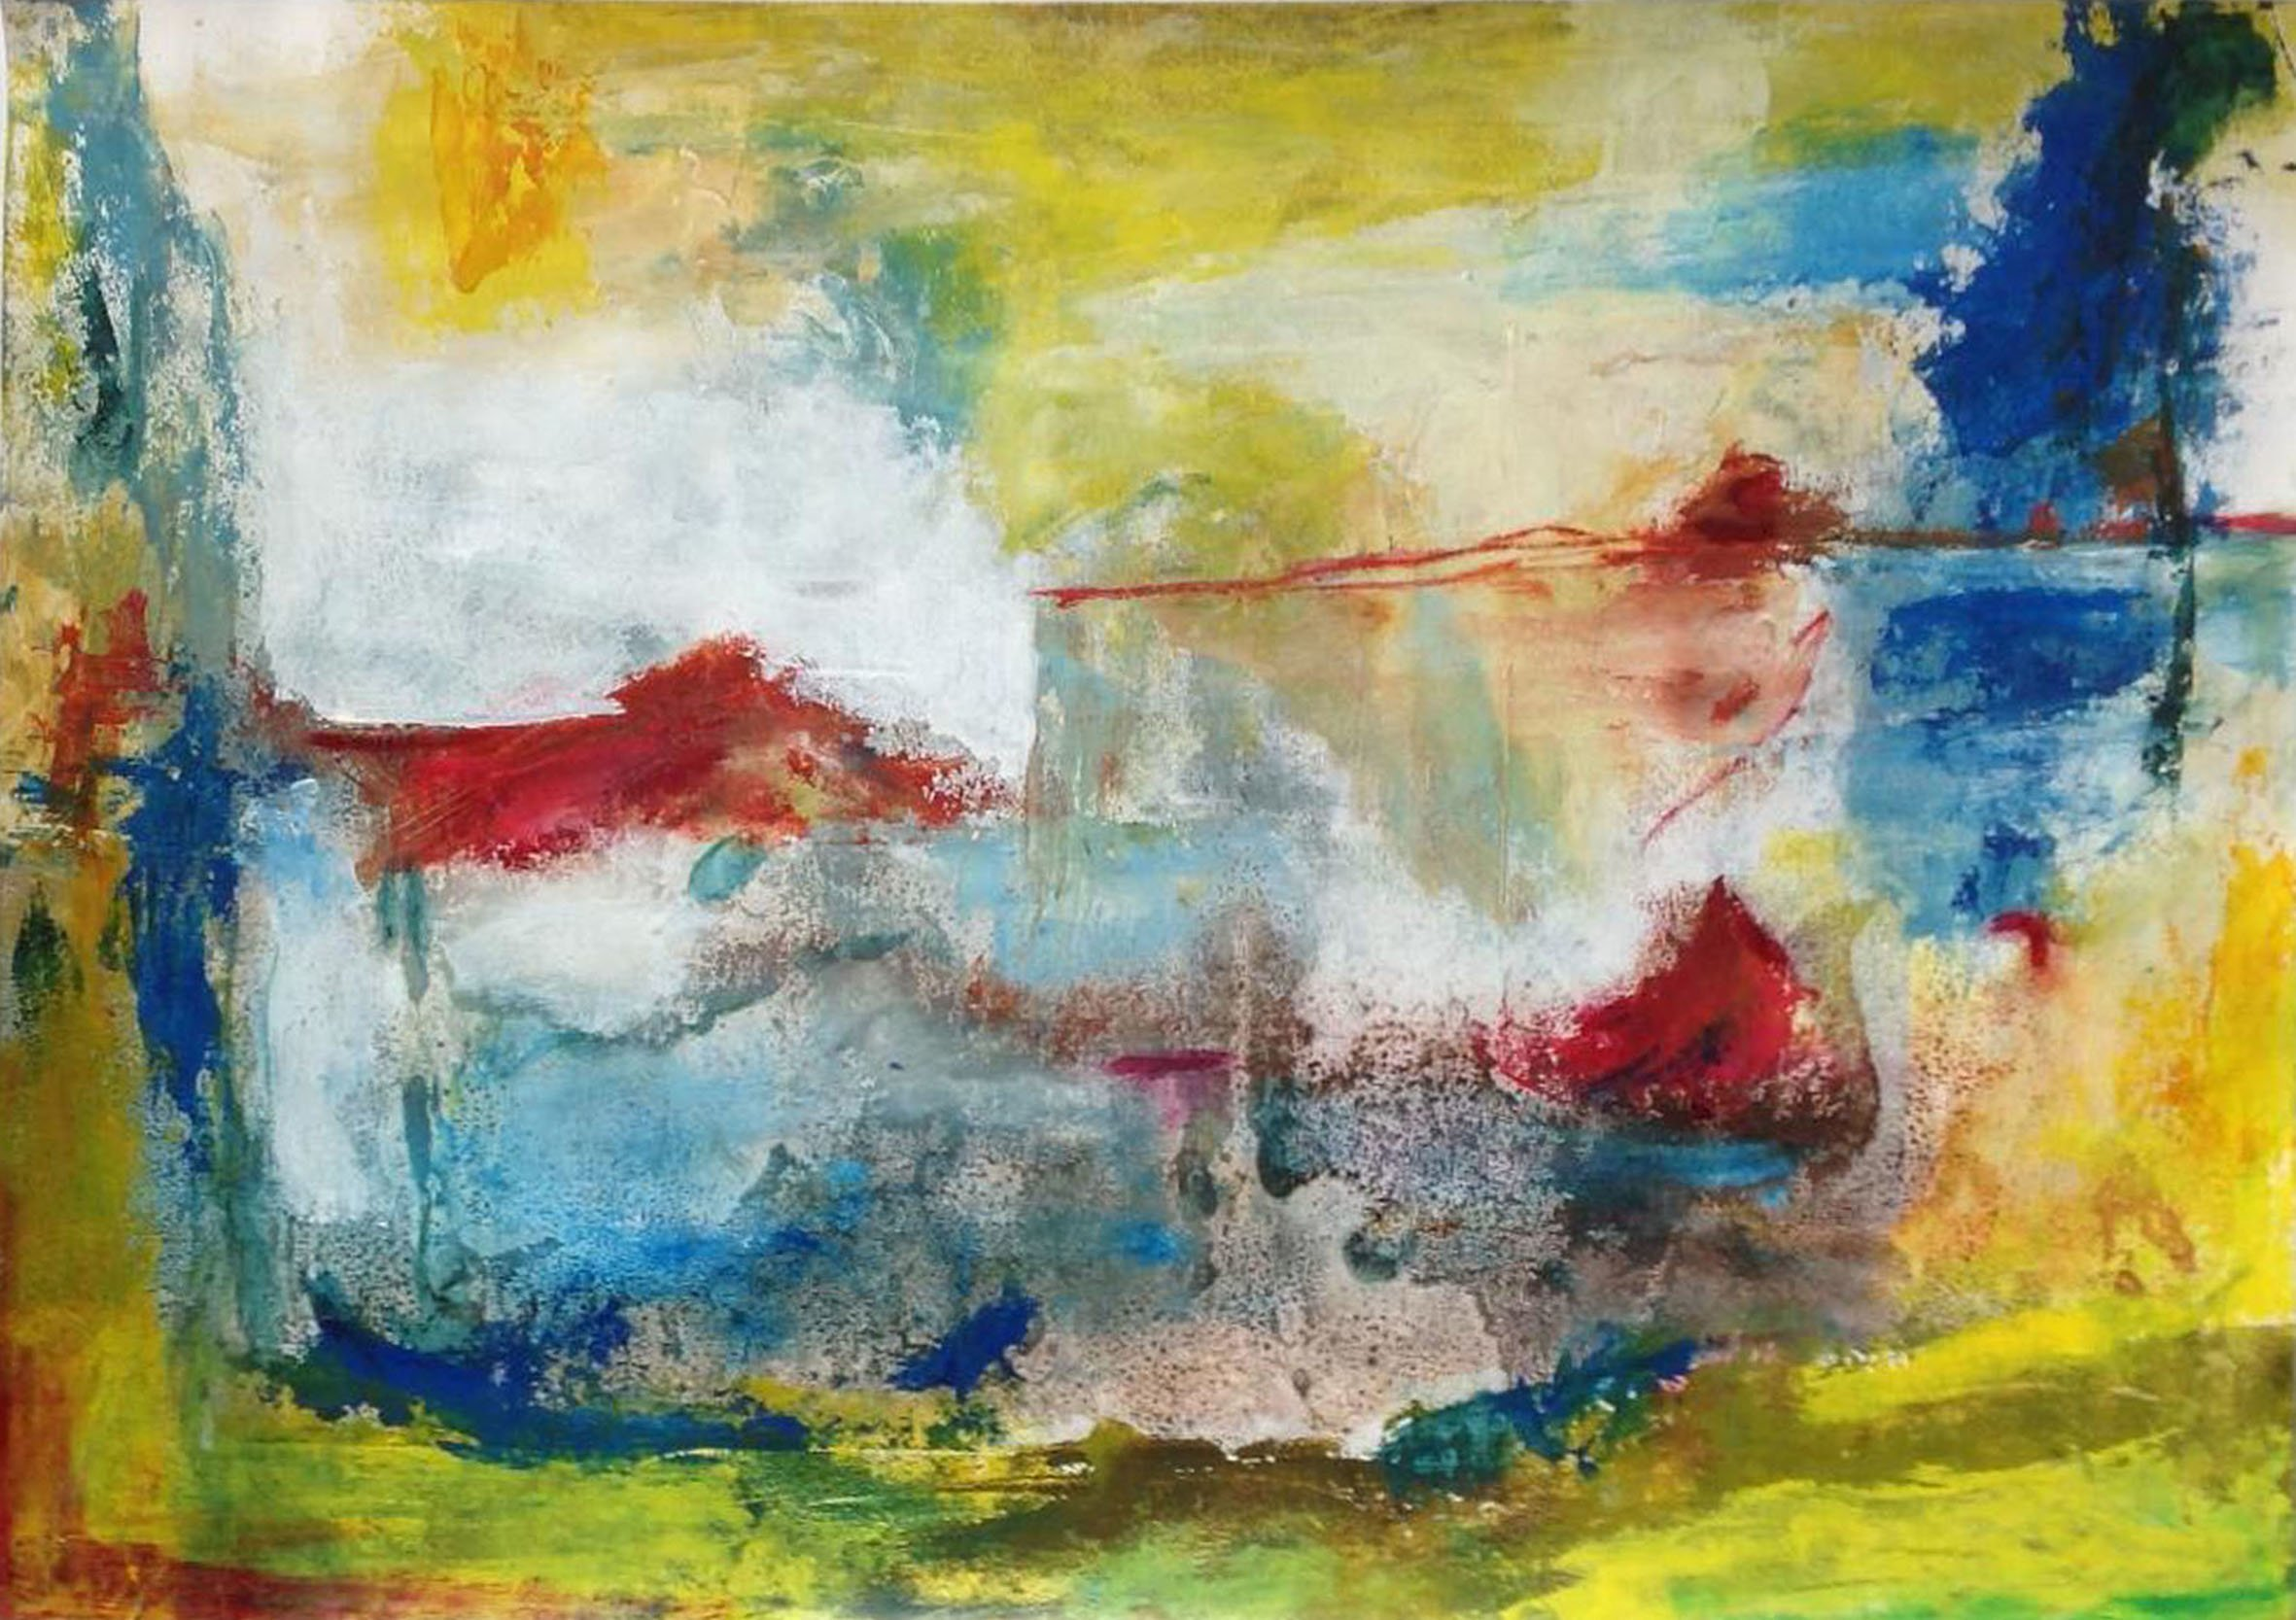 Ana Castro Feijoo: 'breezes', 2019 Mixed Media, Abstract. mixed media on paper, abstract landscape with oils and inks and textures...